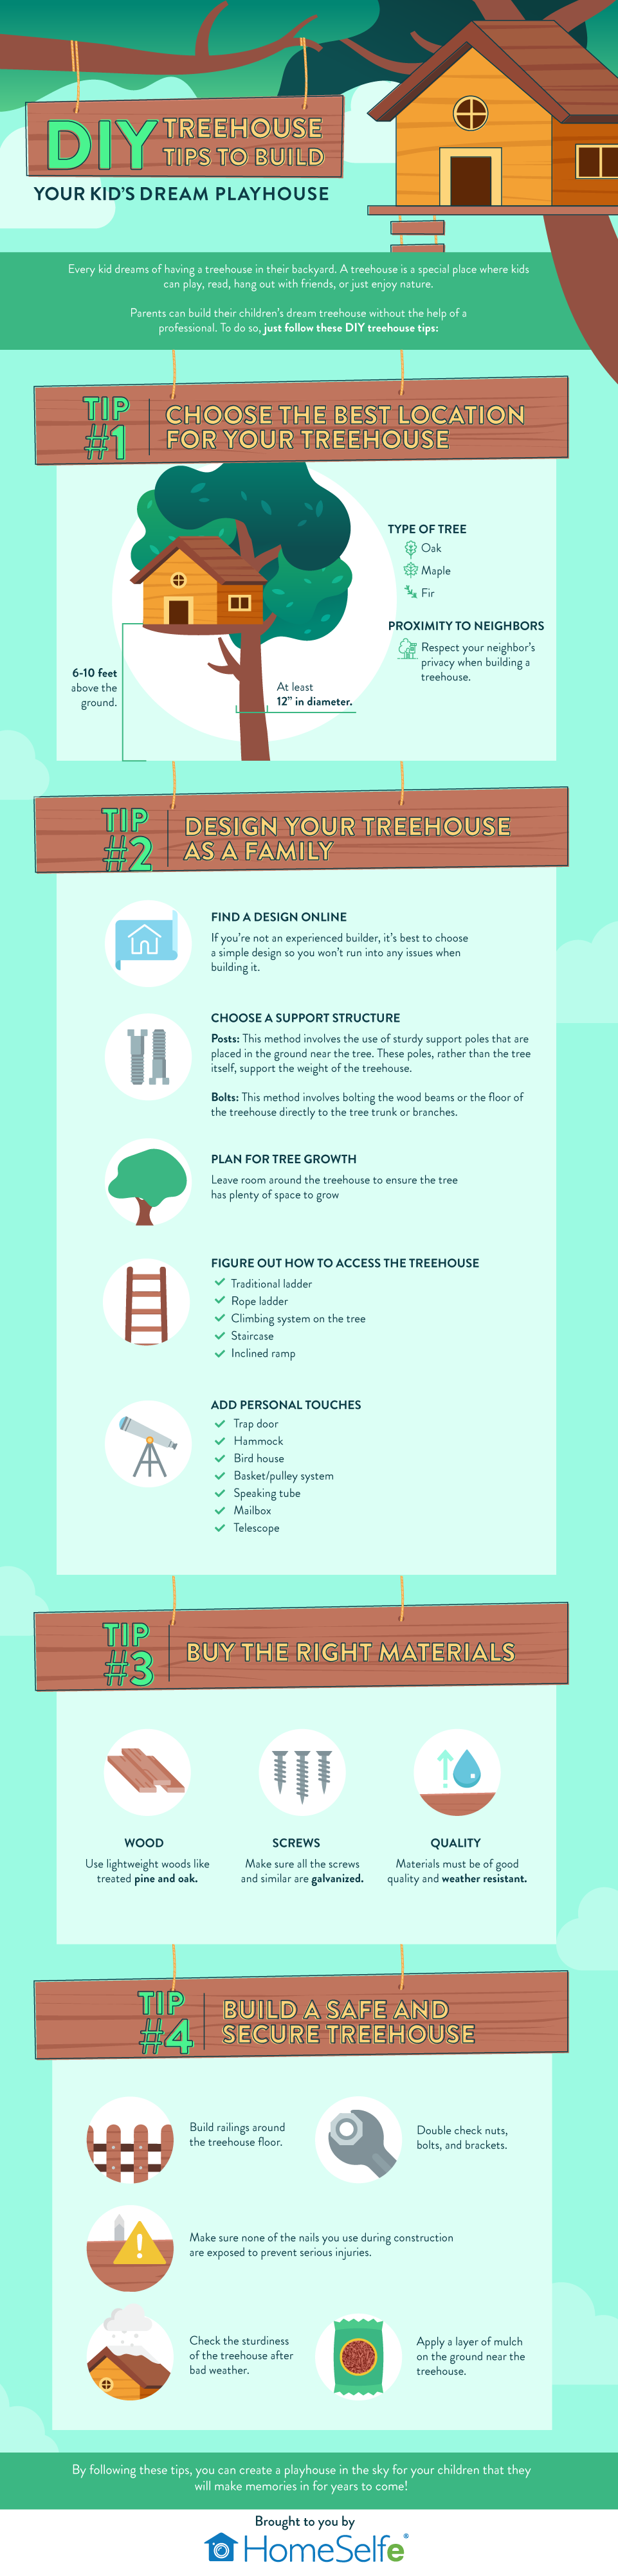 DIY Treehouse Tips